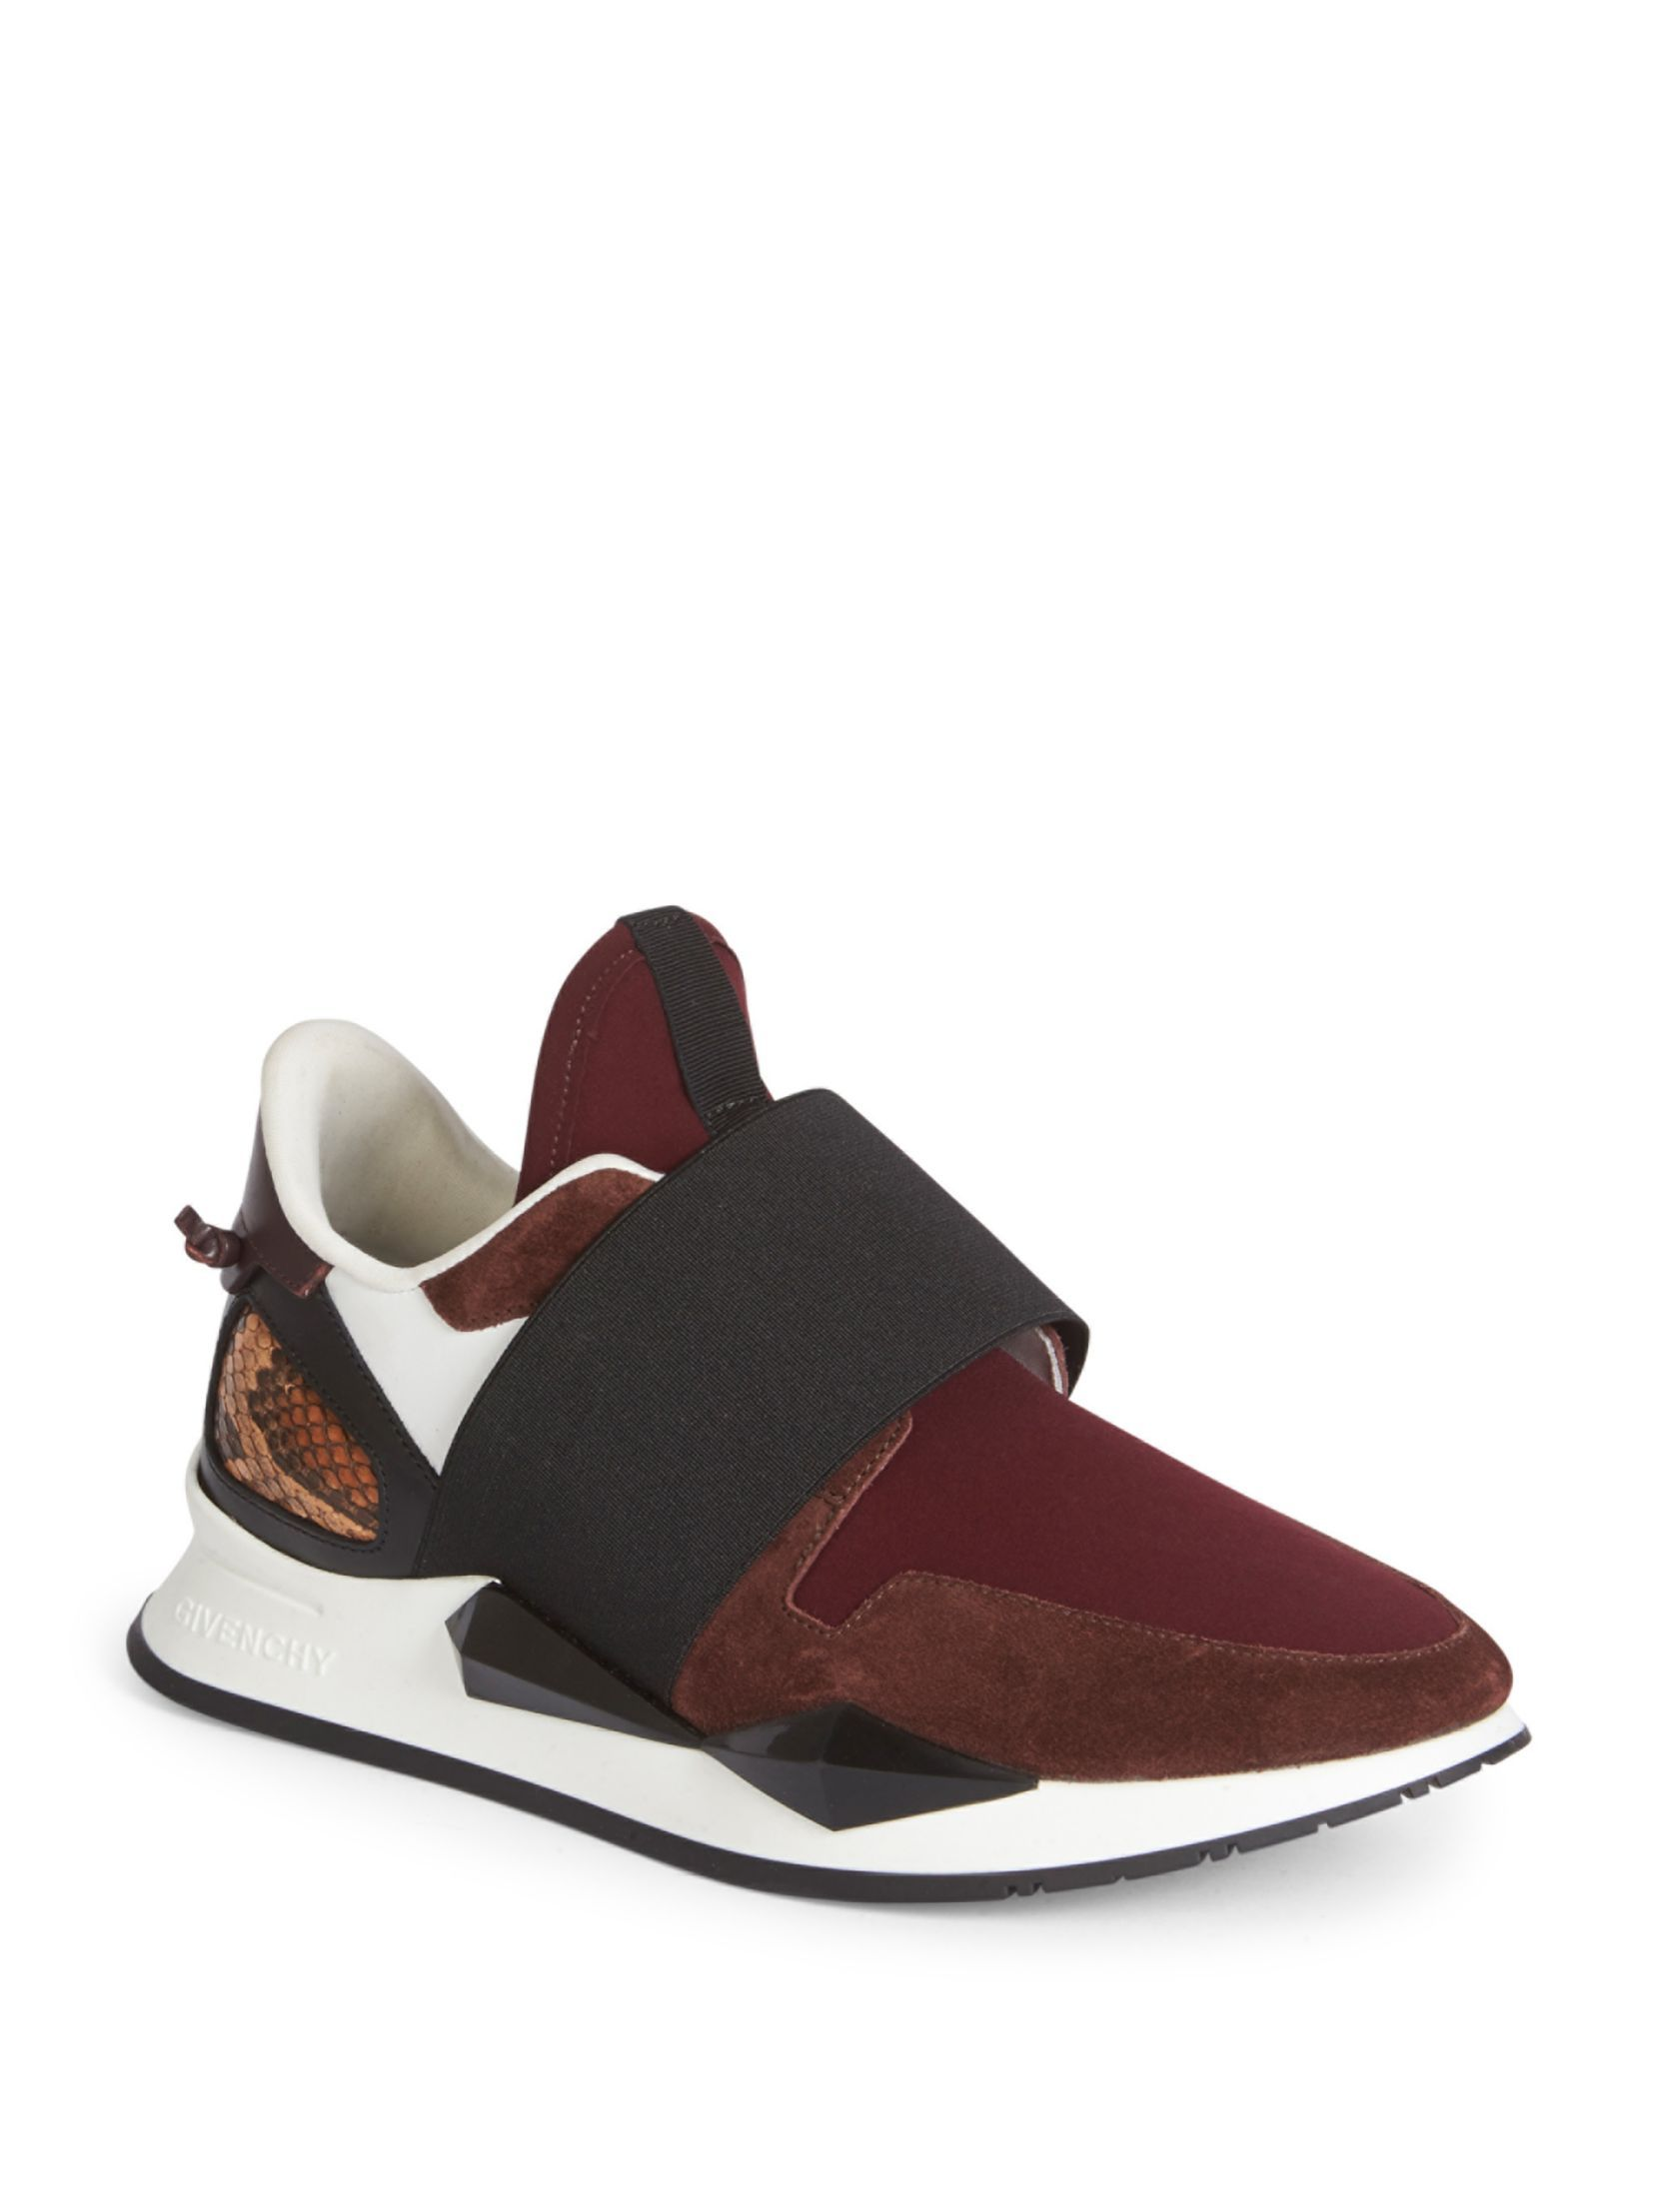 Givenchy Python Slip-On Sneakers buy cheap low price 1dGghrUNT